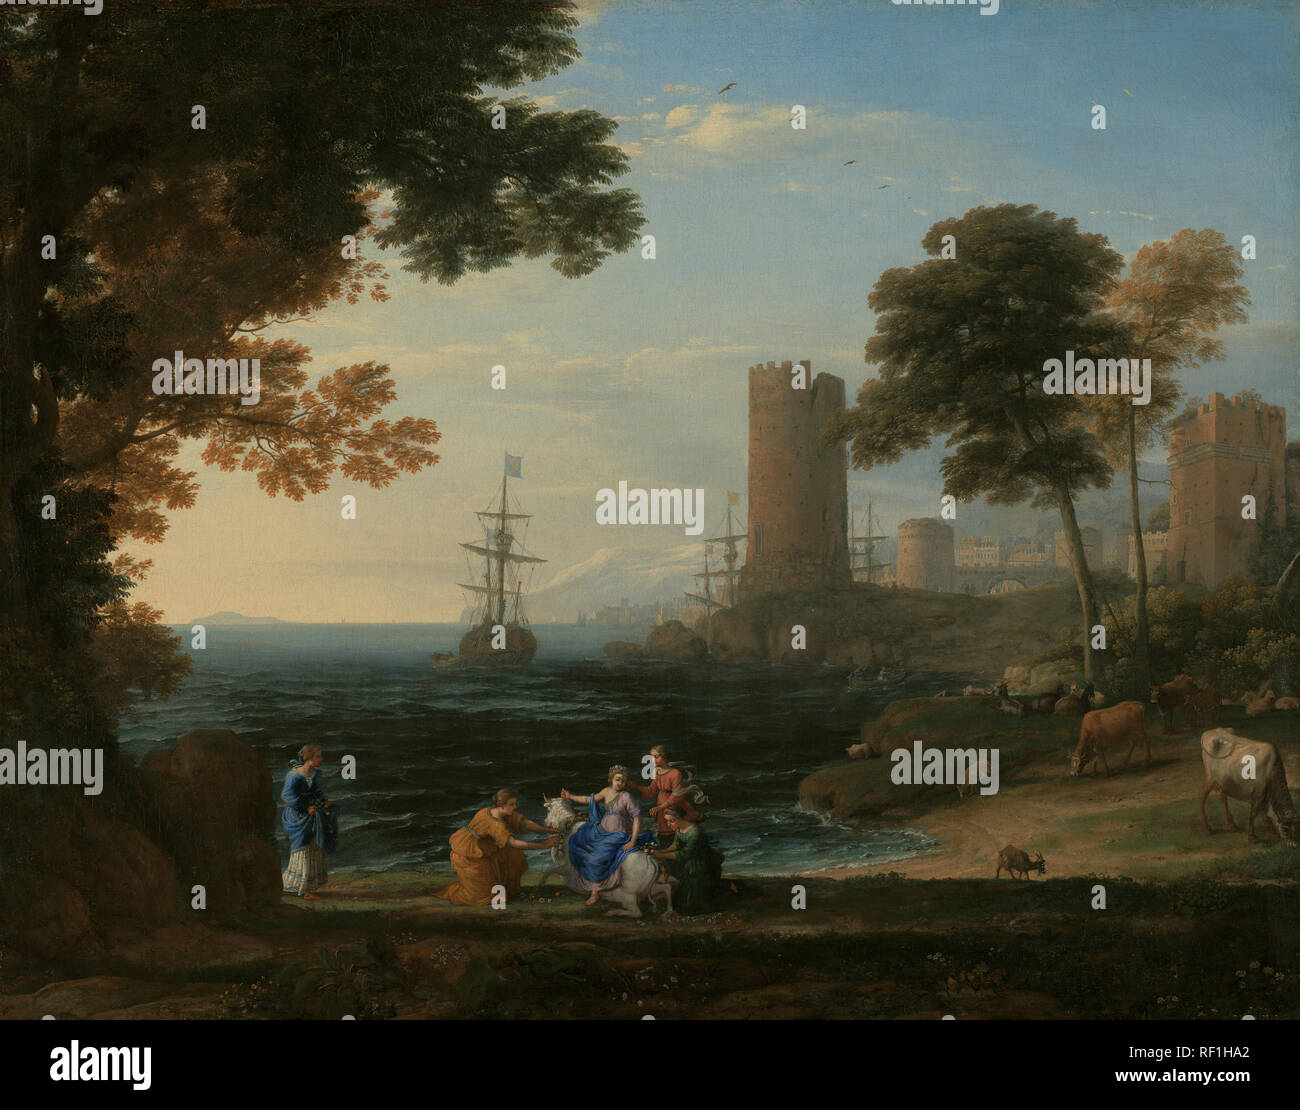 Coast View with the Abduction of Europa; Claude Lorrain (Claude Gellée) (French, 1604 or 1605 ? - 1682); Rome, Italy; 164(5)?; Oil on canvas; 96.2 × 167.6 cm (37 7/8 × 66 in.); 2007.32 - Stock Image